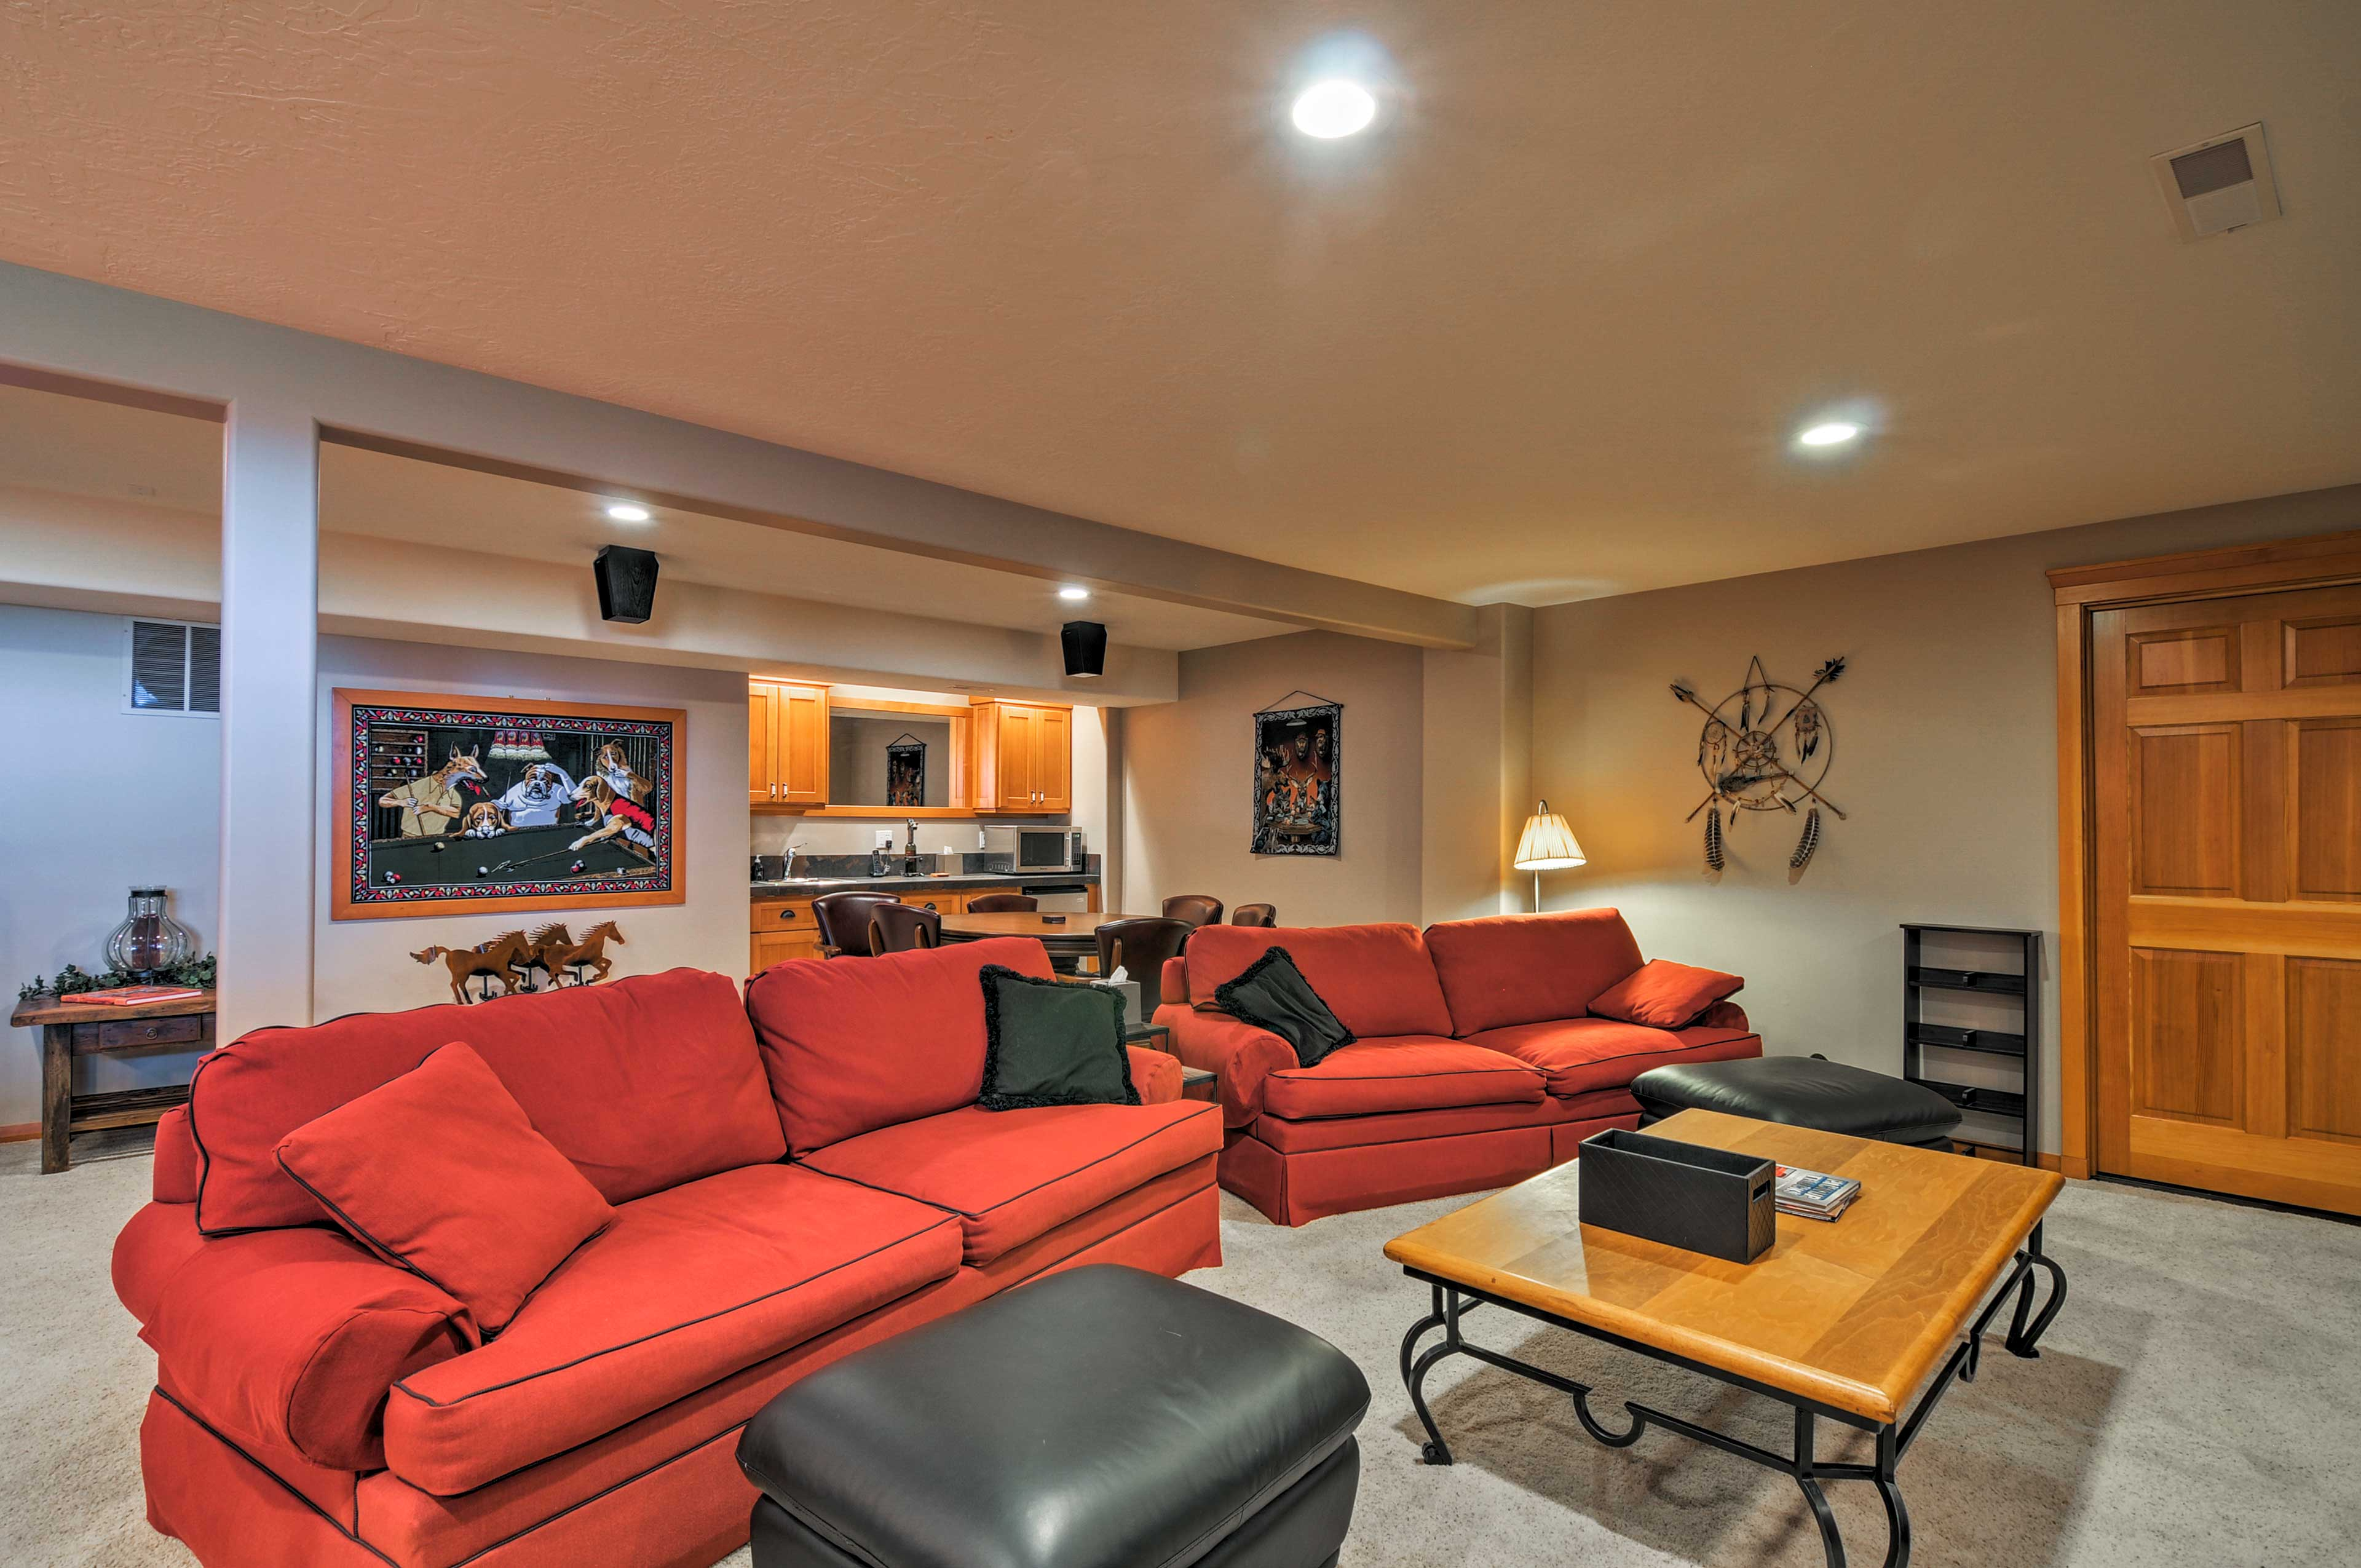 The basement features 2 full sleeper sofas.